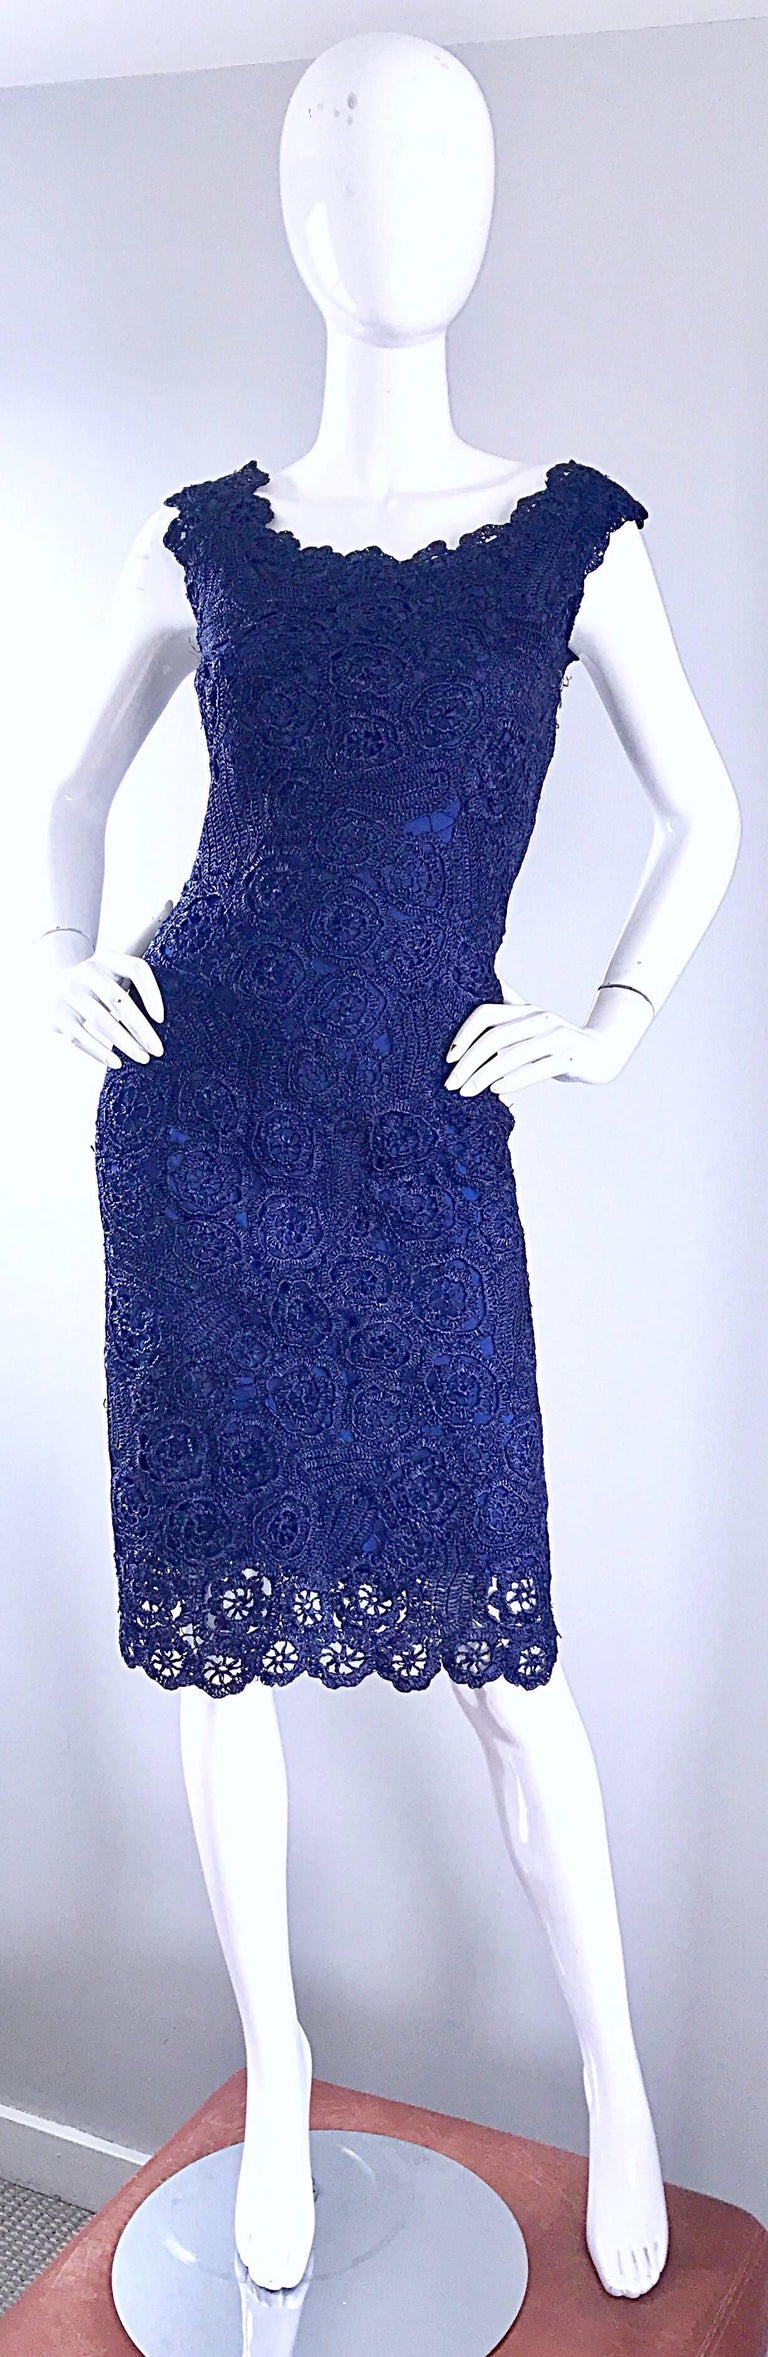 Smashing 1950s Demi Couture navy blue raffia dress! Vibrant navy blue raffia with an attached silk lining. Full metal zipper up the side with hook-and-eye closure. Bombshell fit, with a fitted bodice and cap sleeves. Extremely flattering fit that